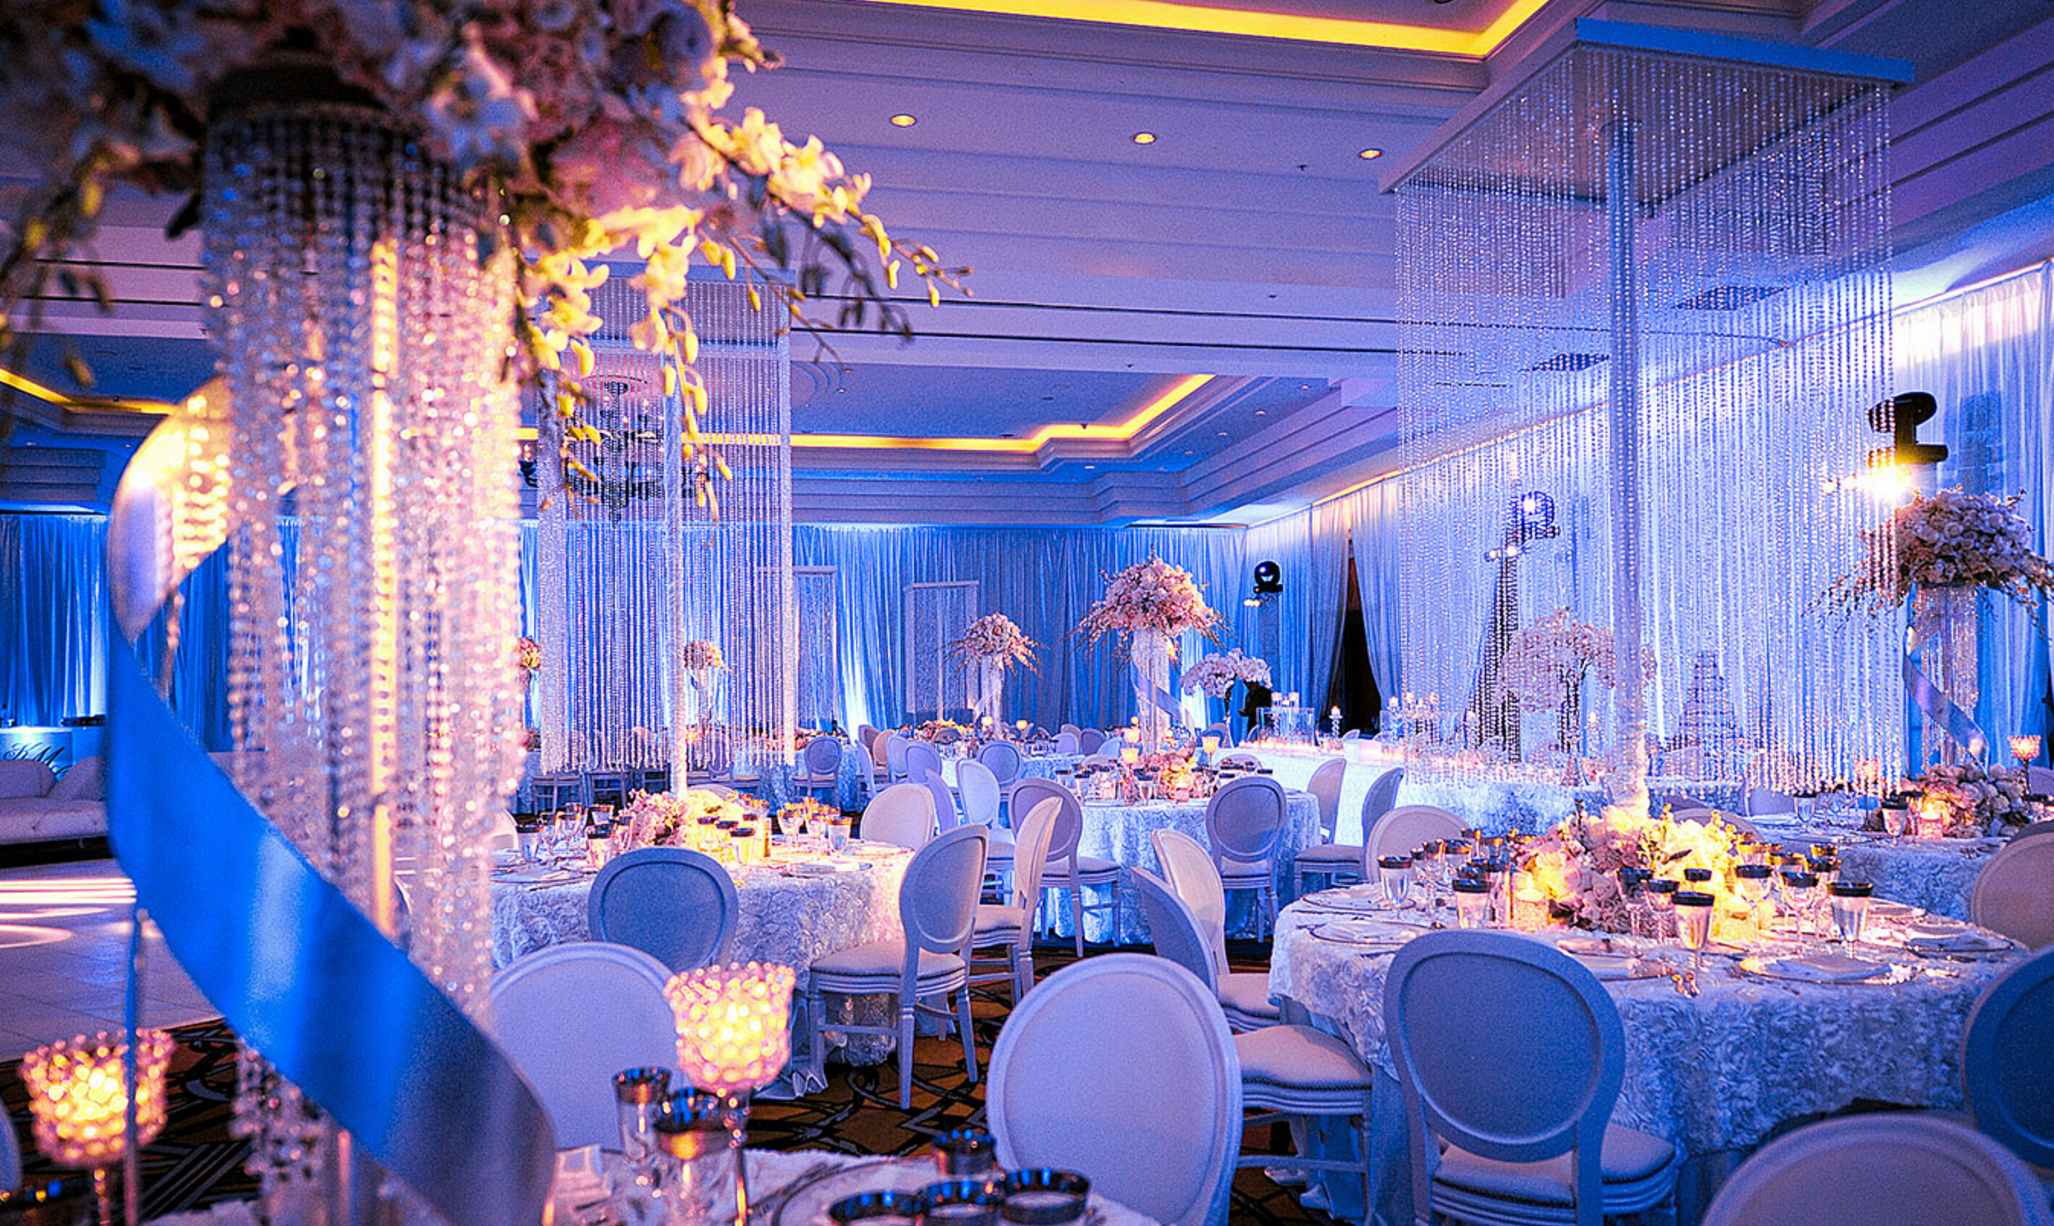 How To Decide On A Wedding Theme